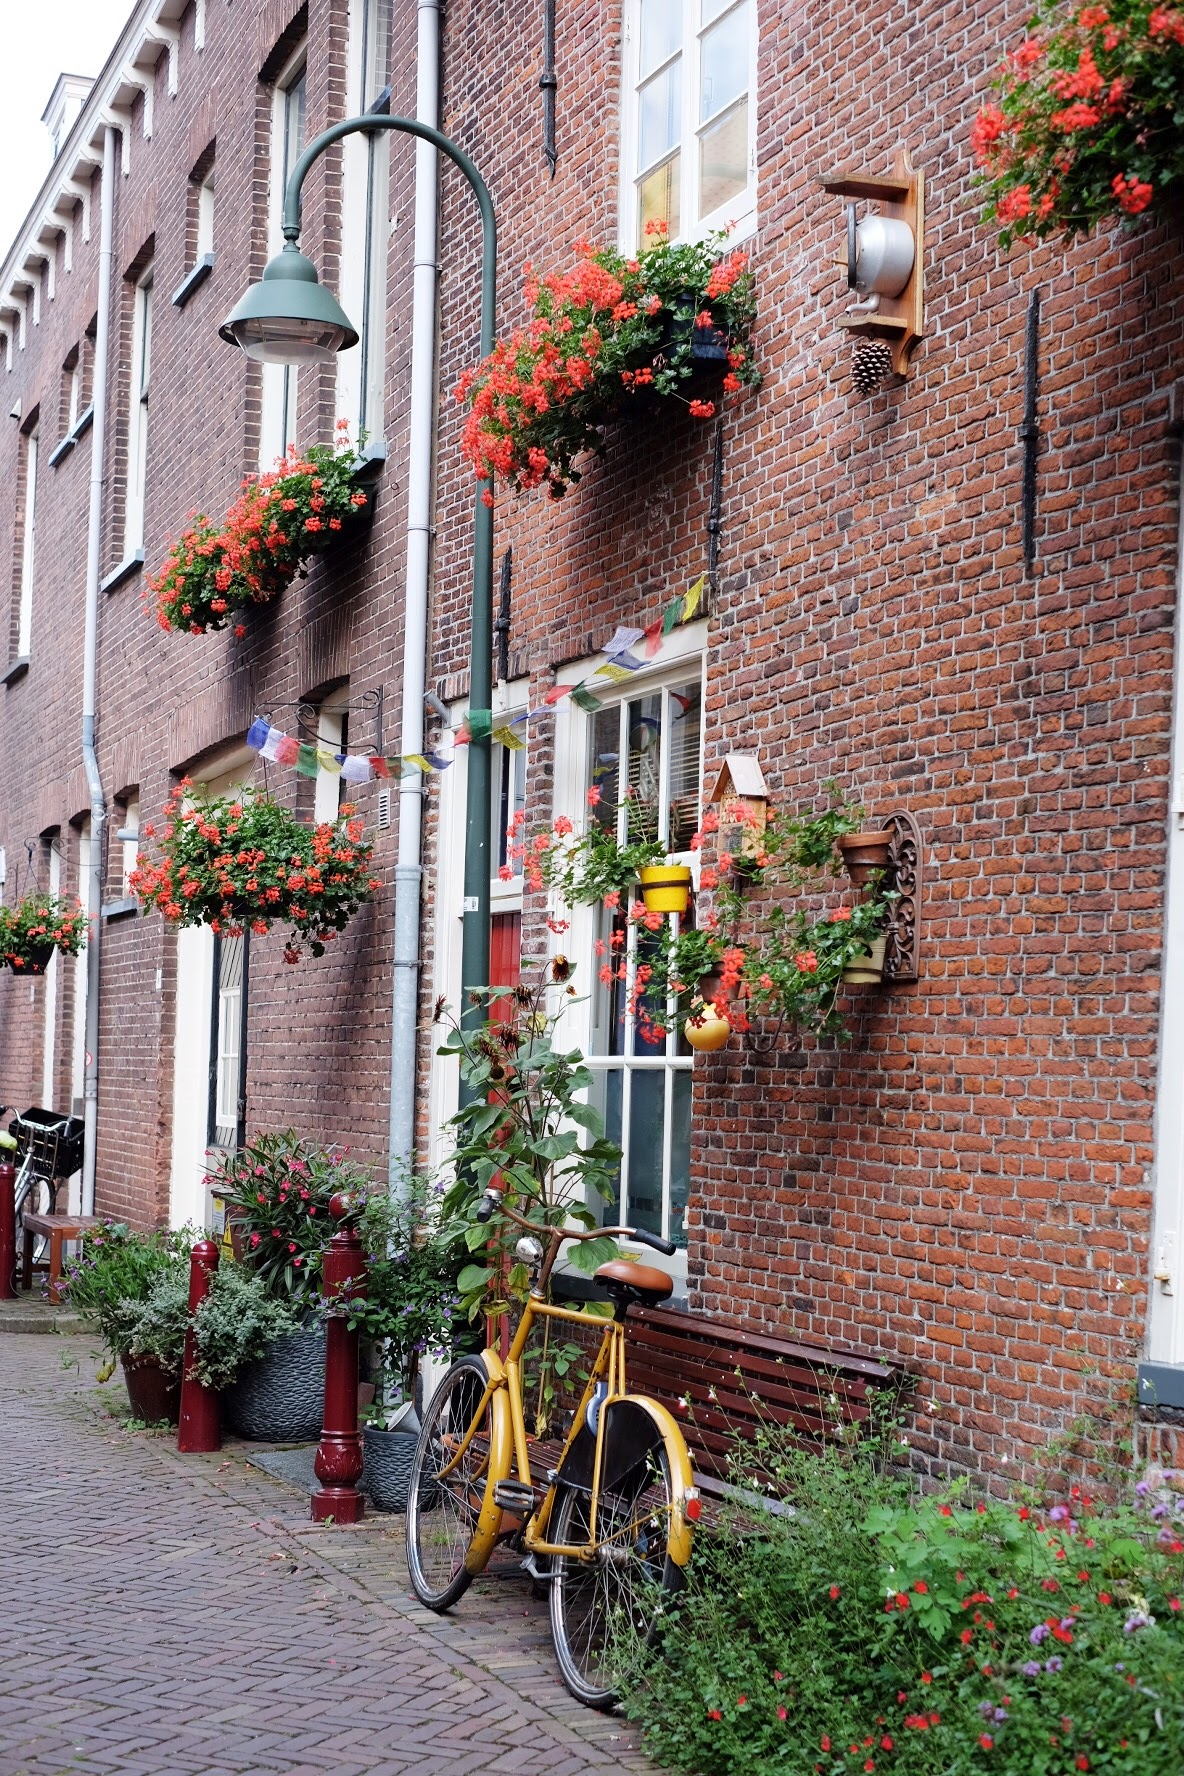 Delft Bike Flowers